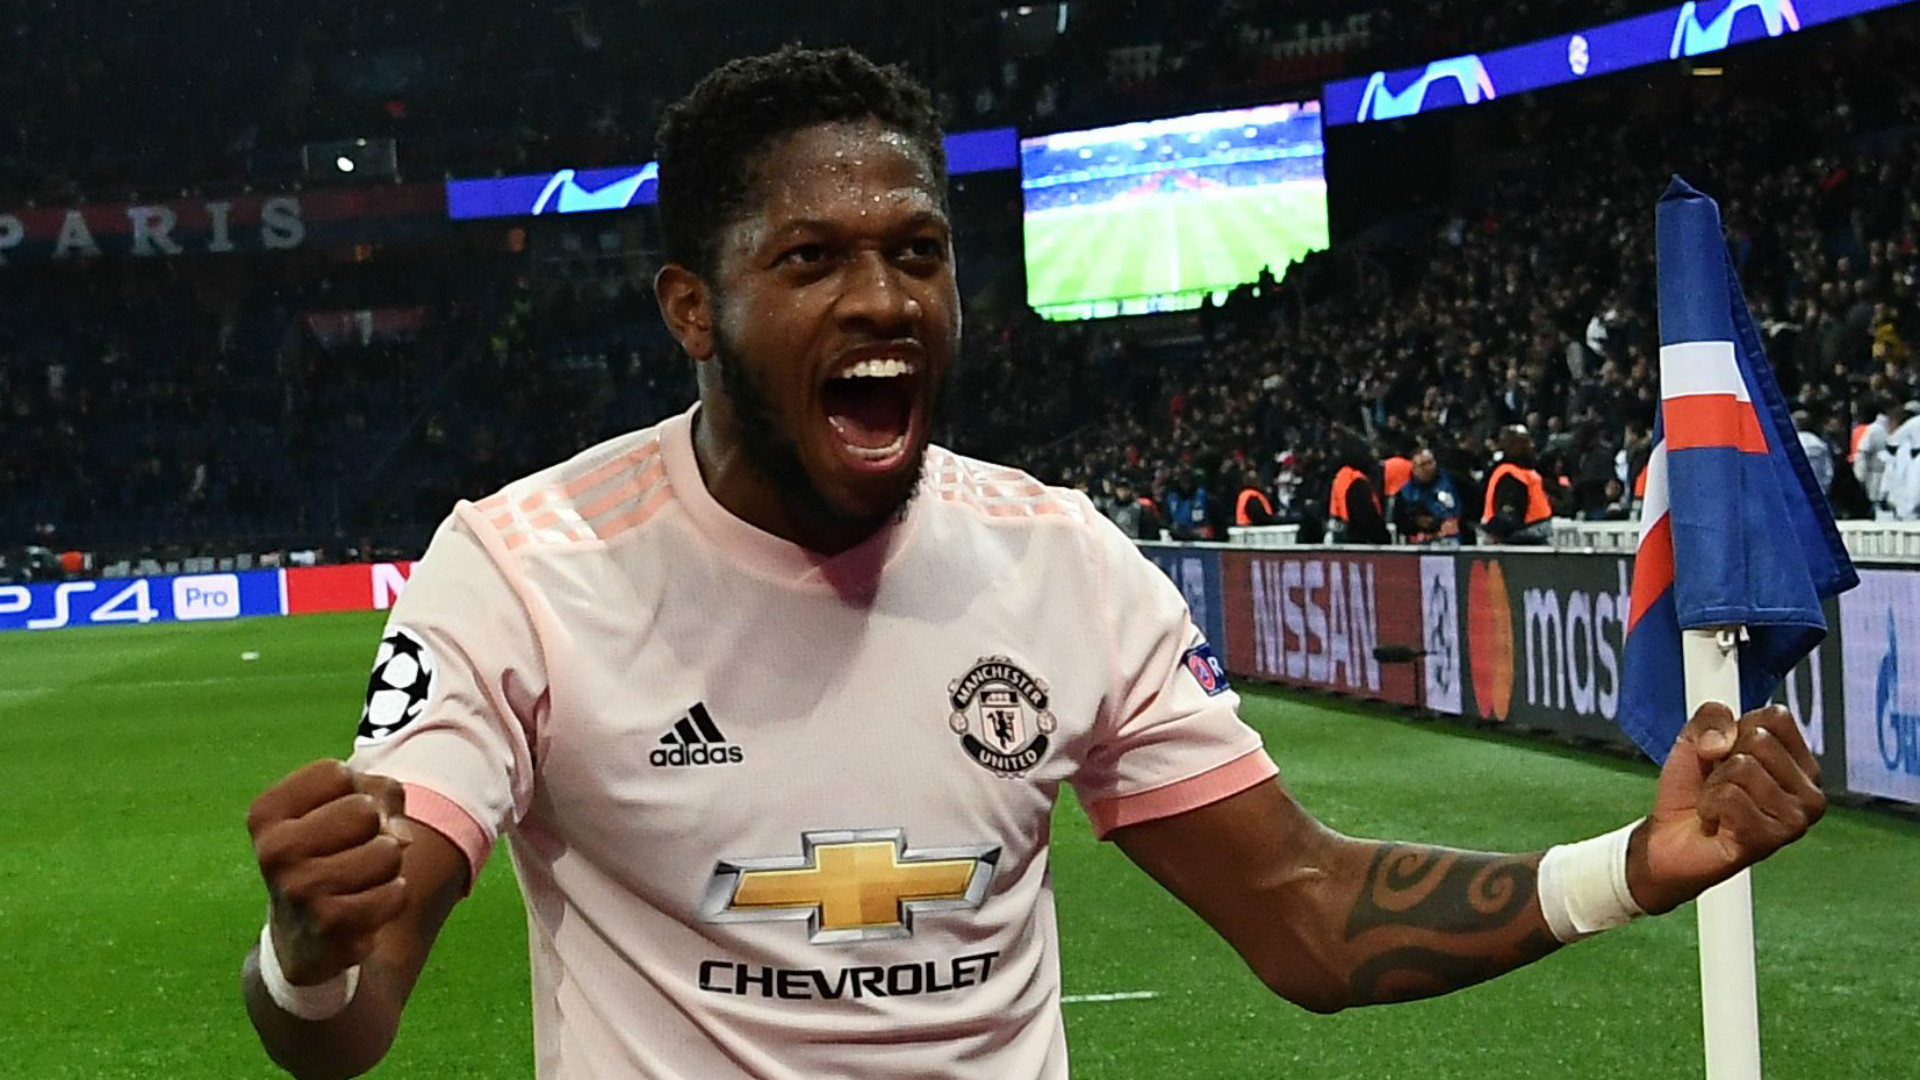 PSG without Verratti, Paredes against Man Utd in Champions League